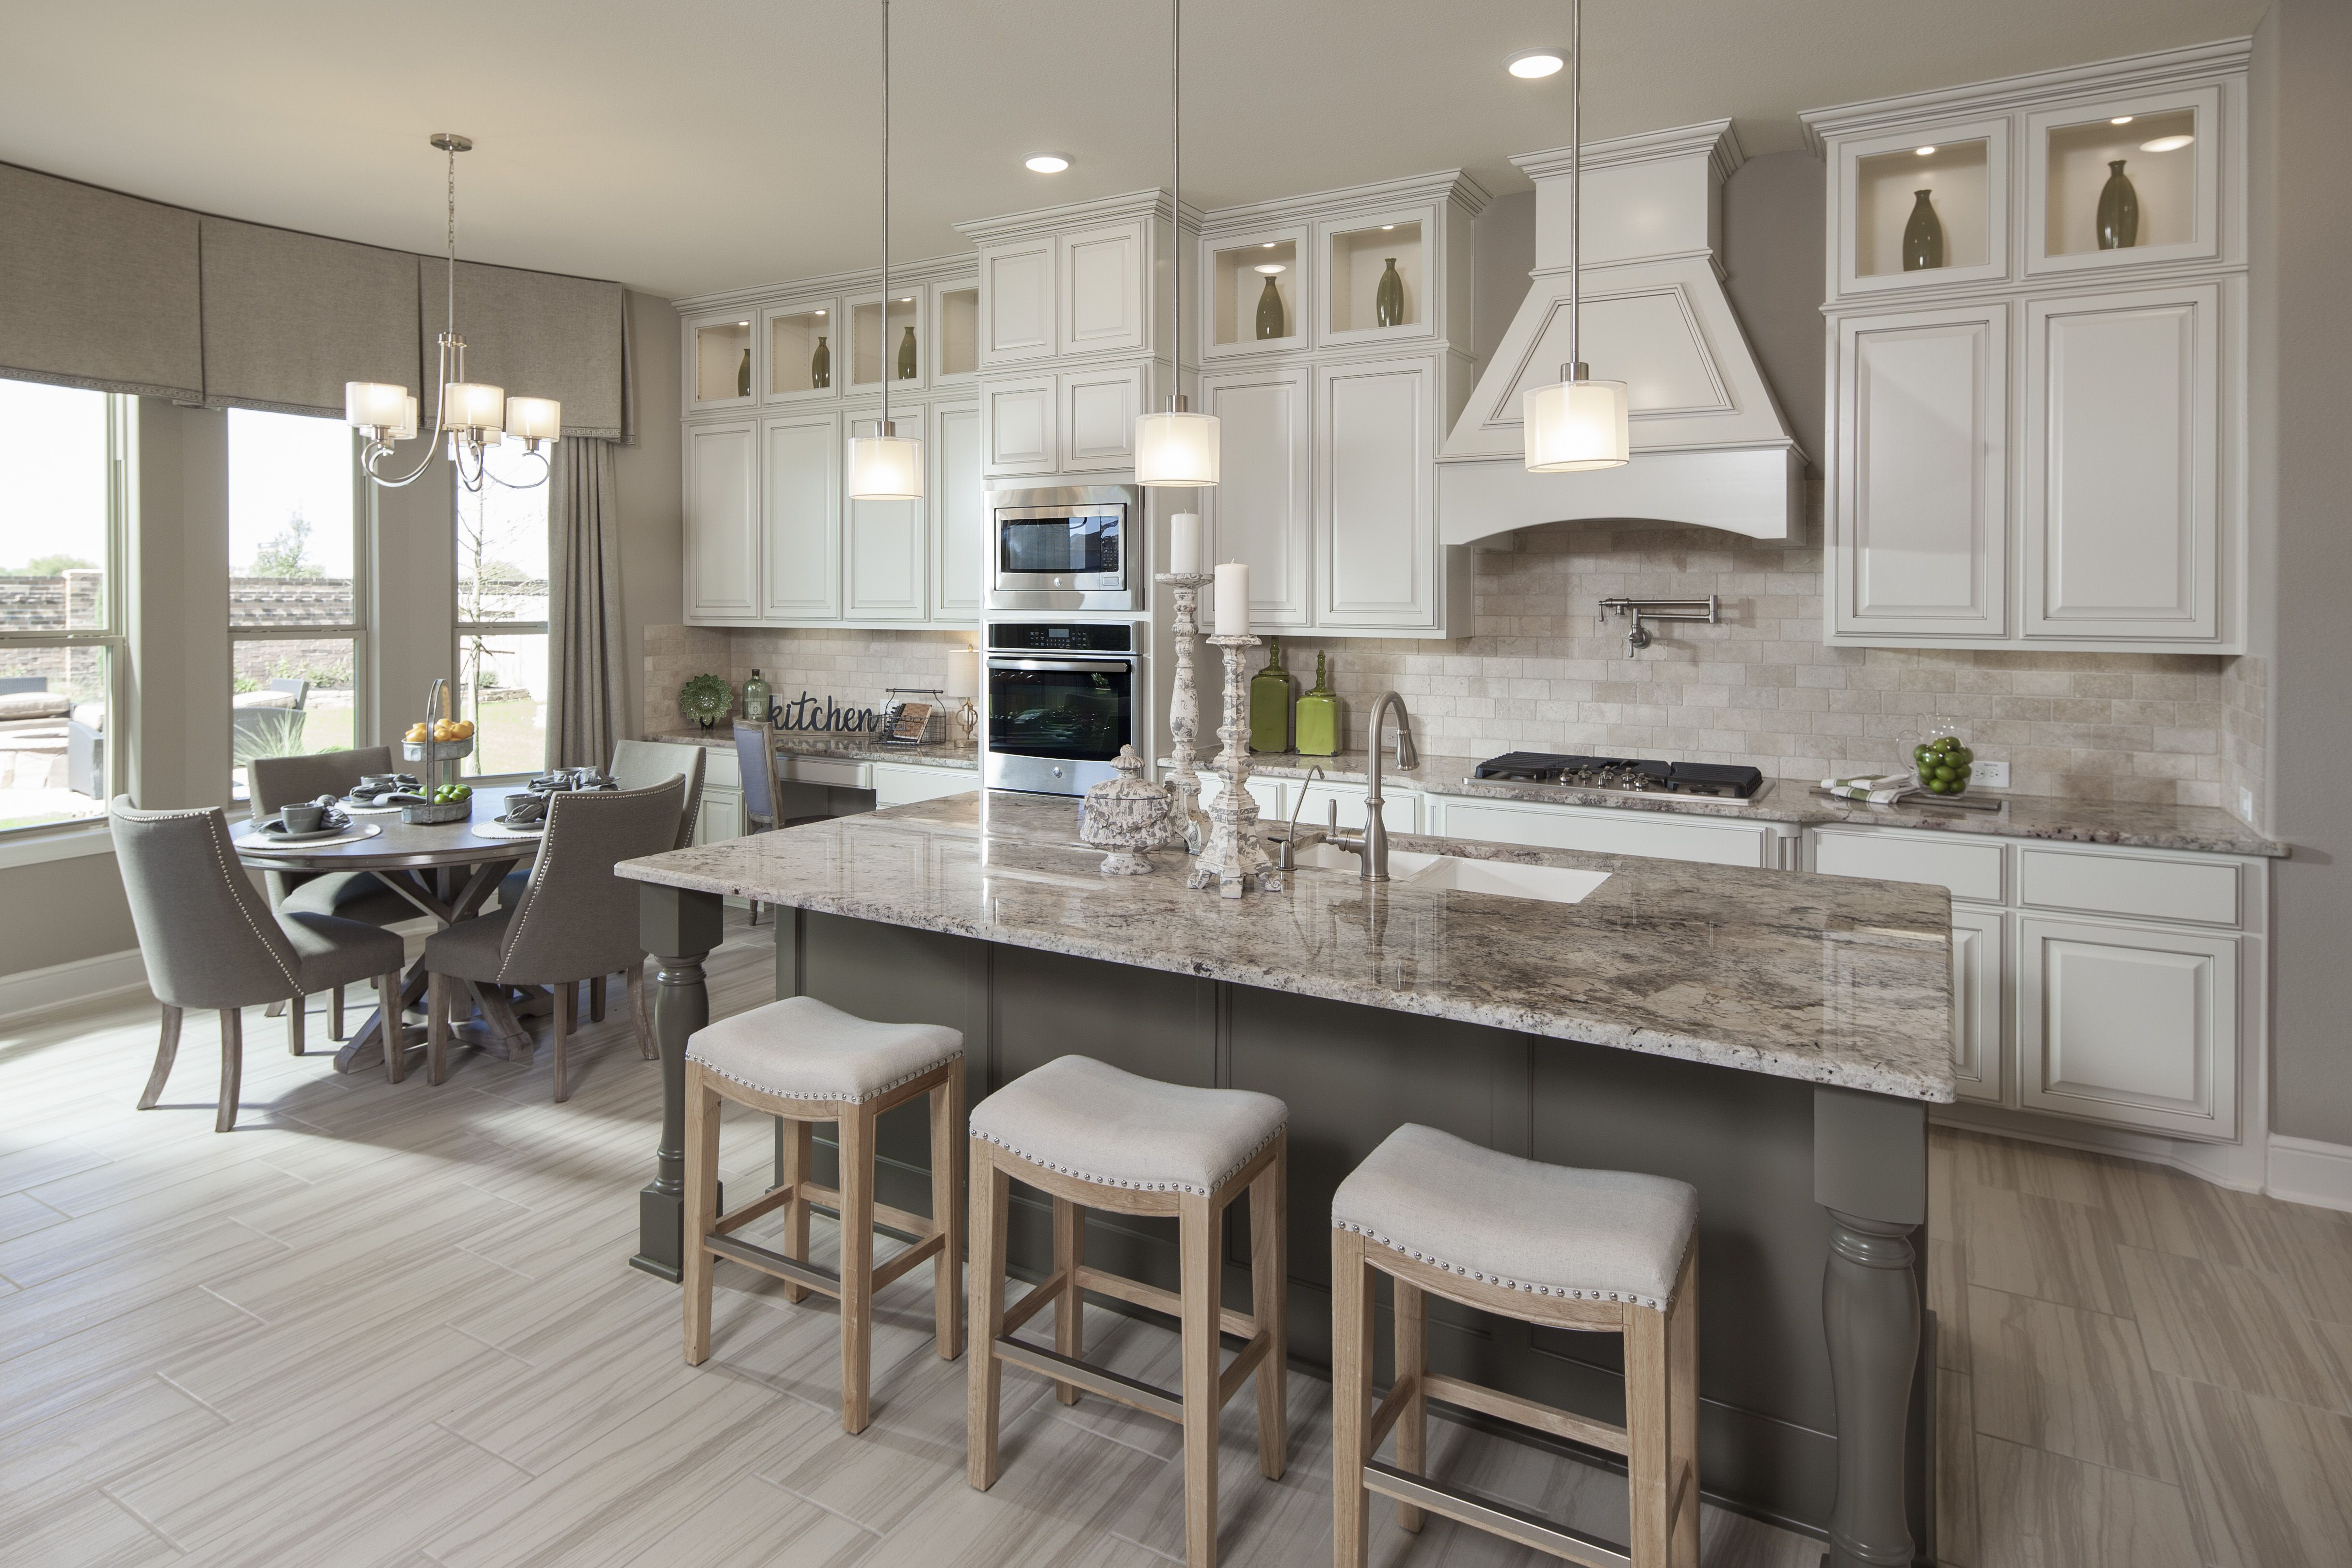 Coventry Homes In Cinco Ranch Katy Tx Coventry Homes Kitchen Design Kitchen Ideas New House